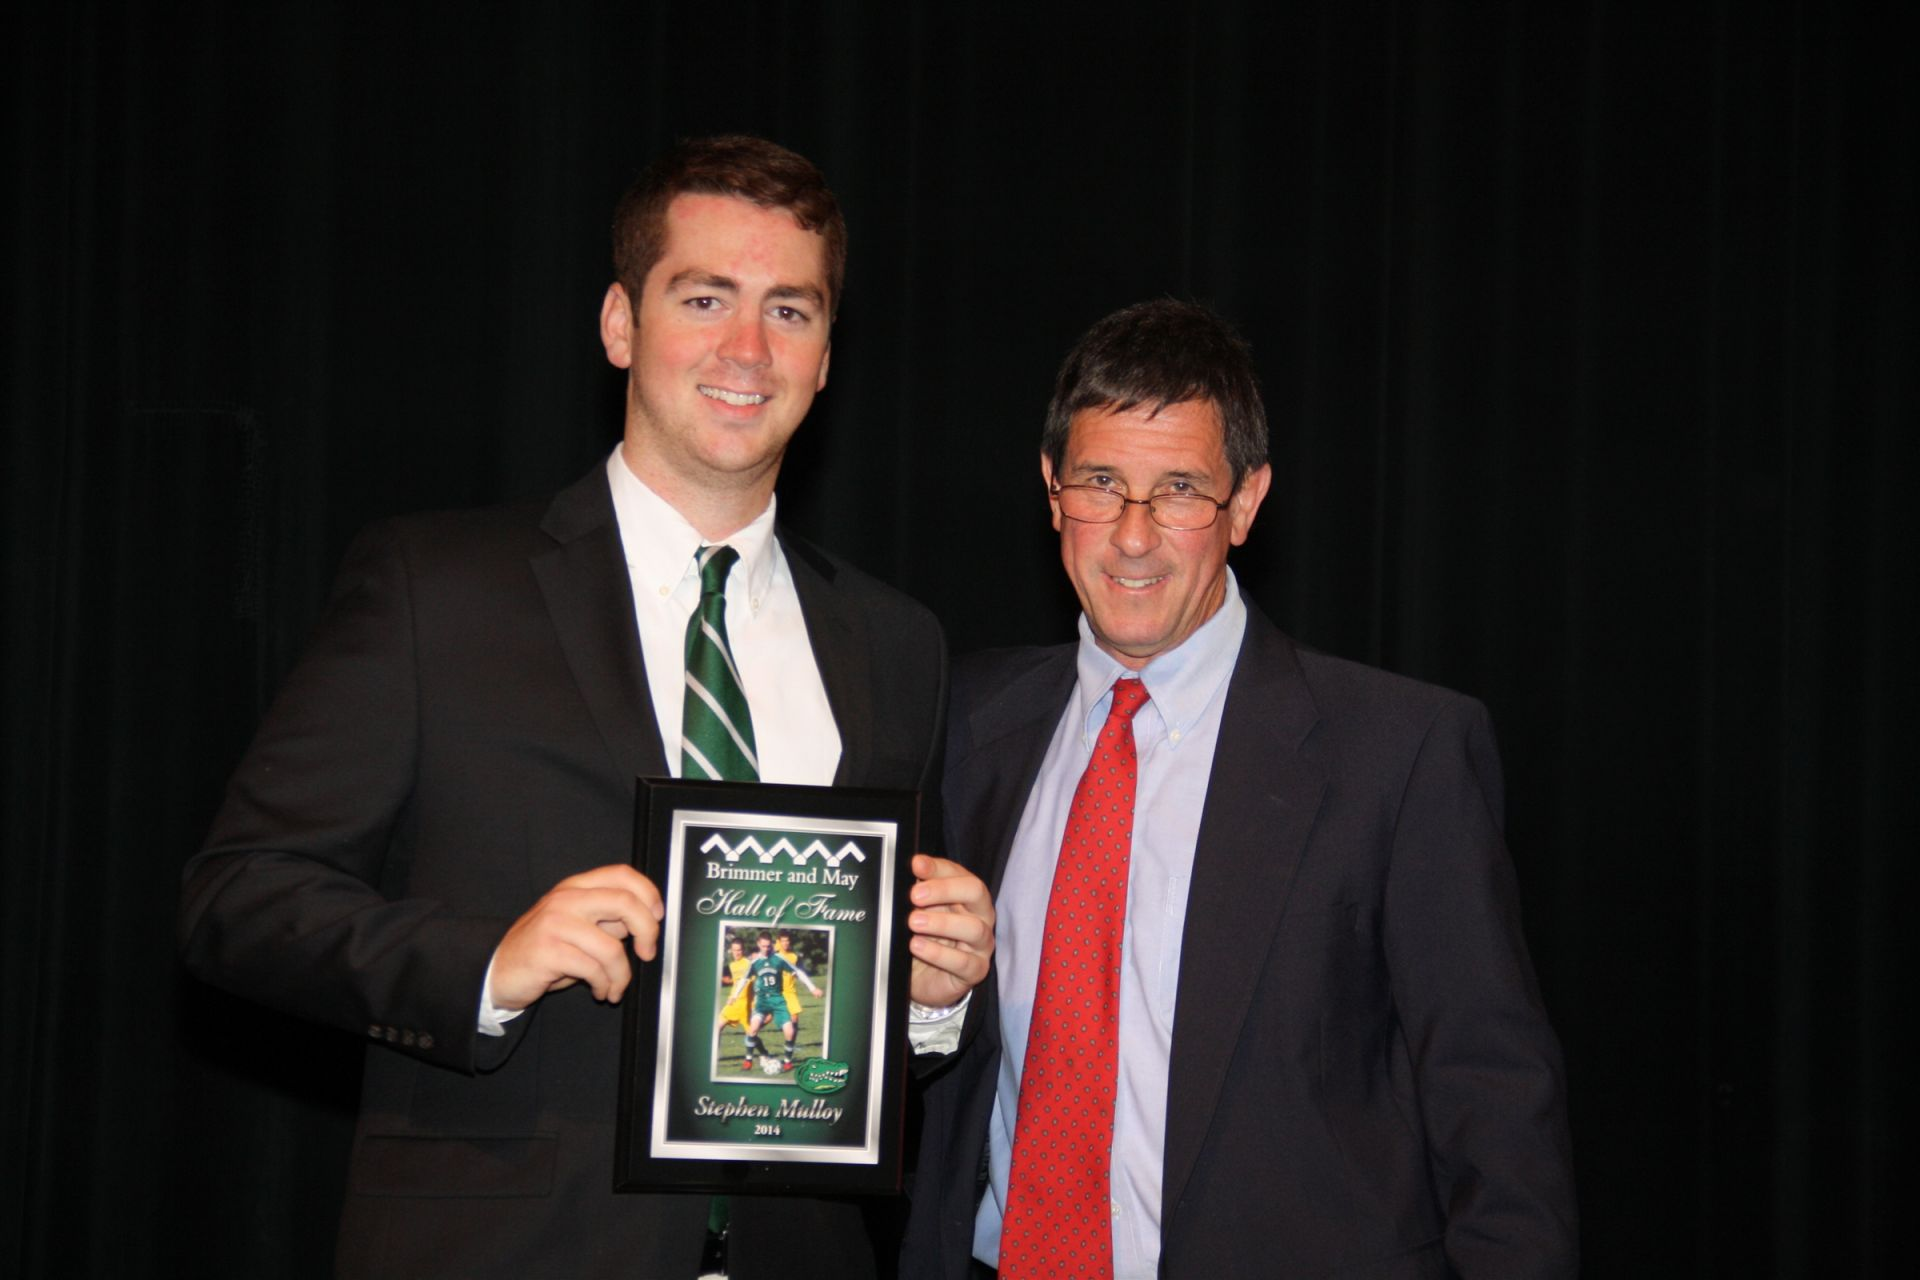 Stephen Mulloy - 2014 Inductee